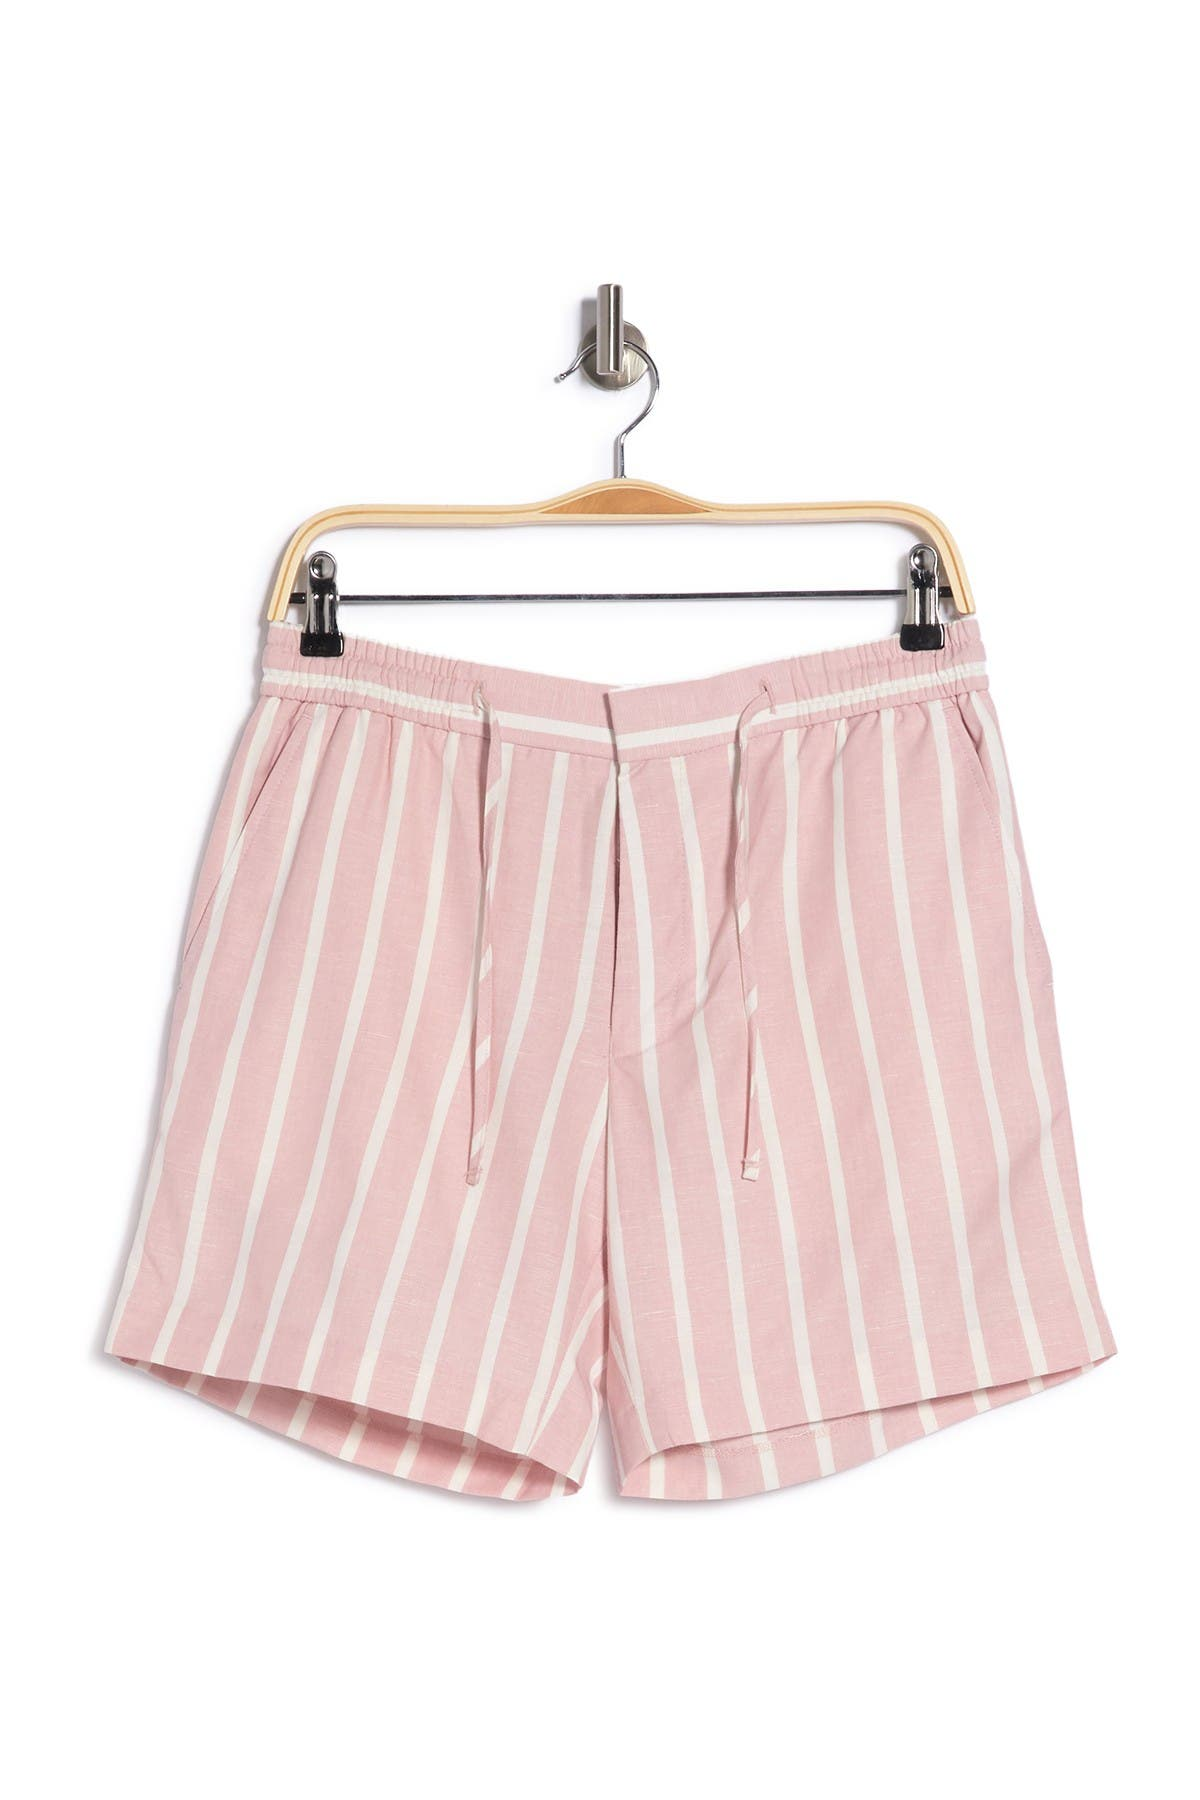 Image of TOPMAN Pleated Pink Stripe Shorts